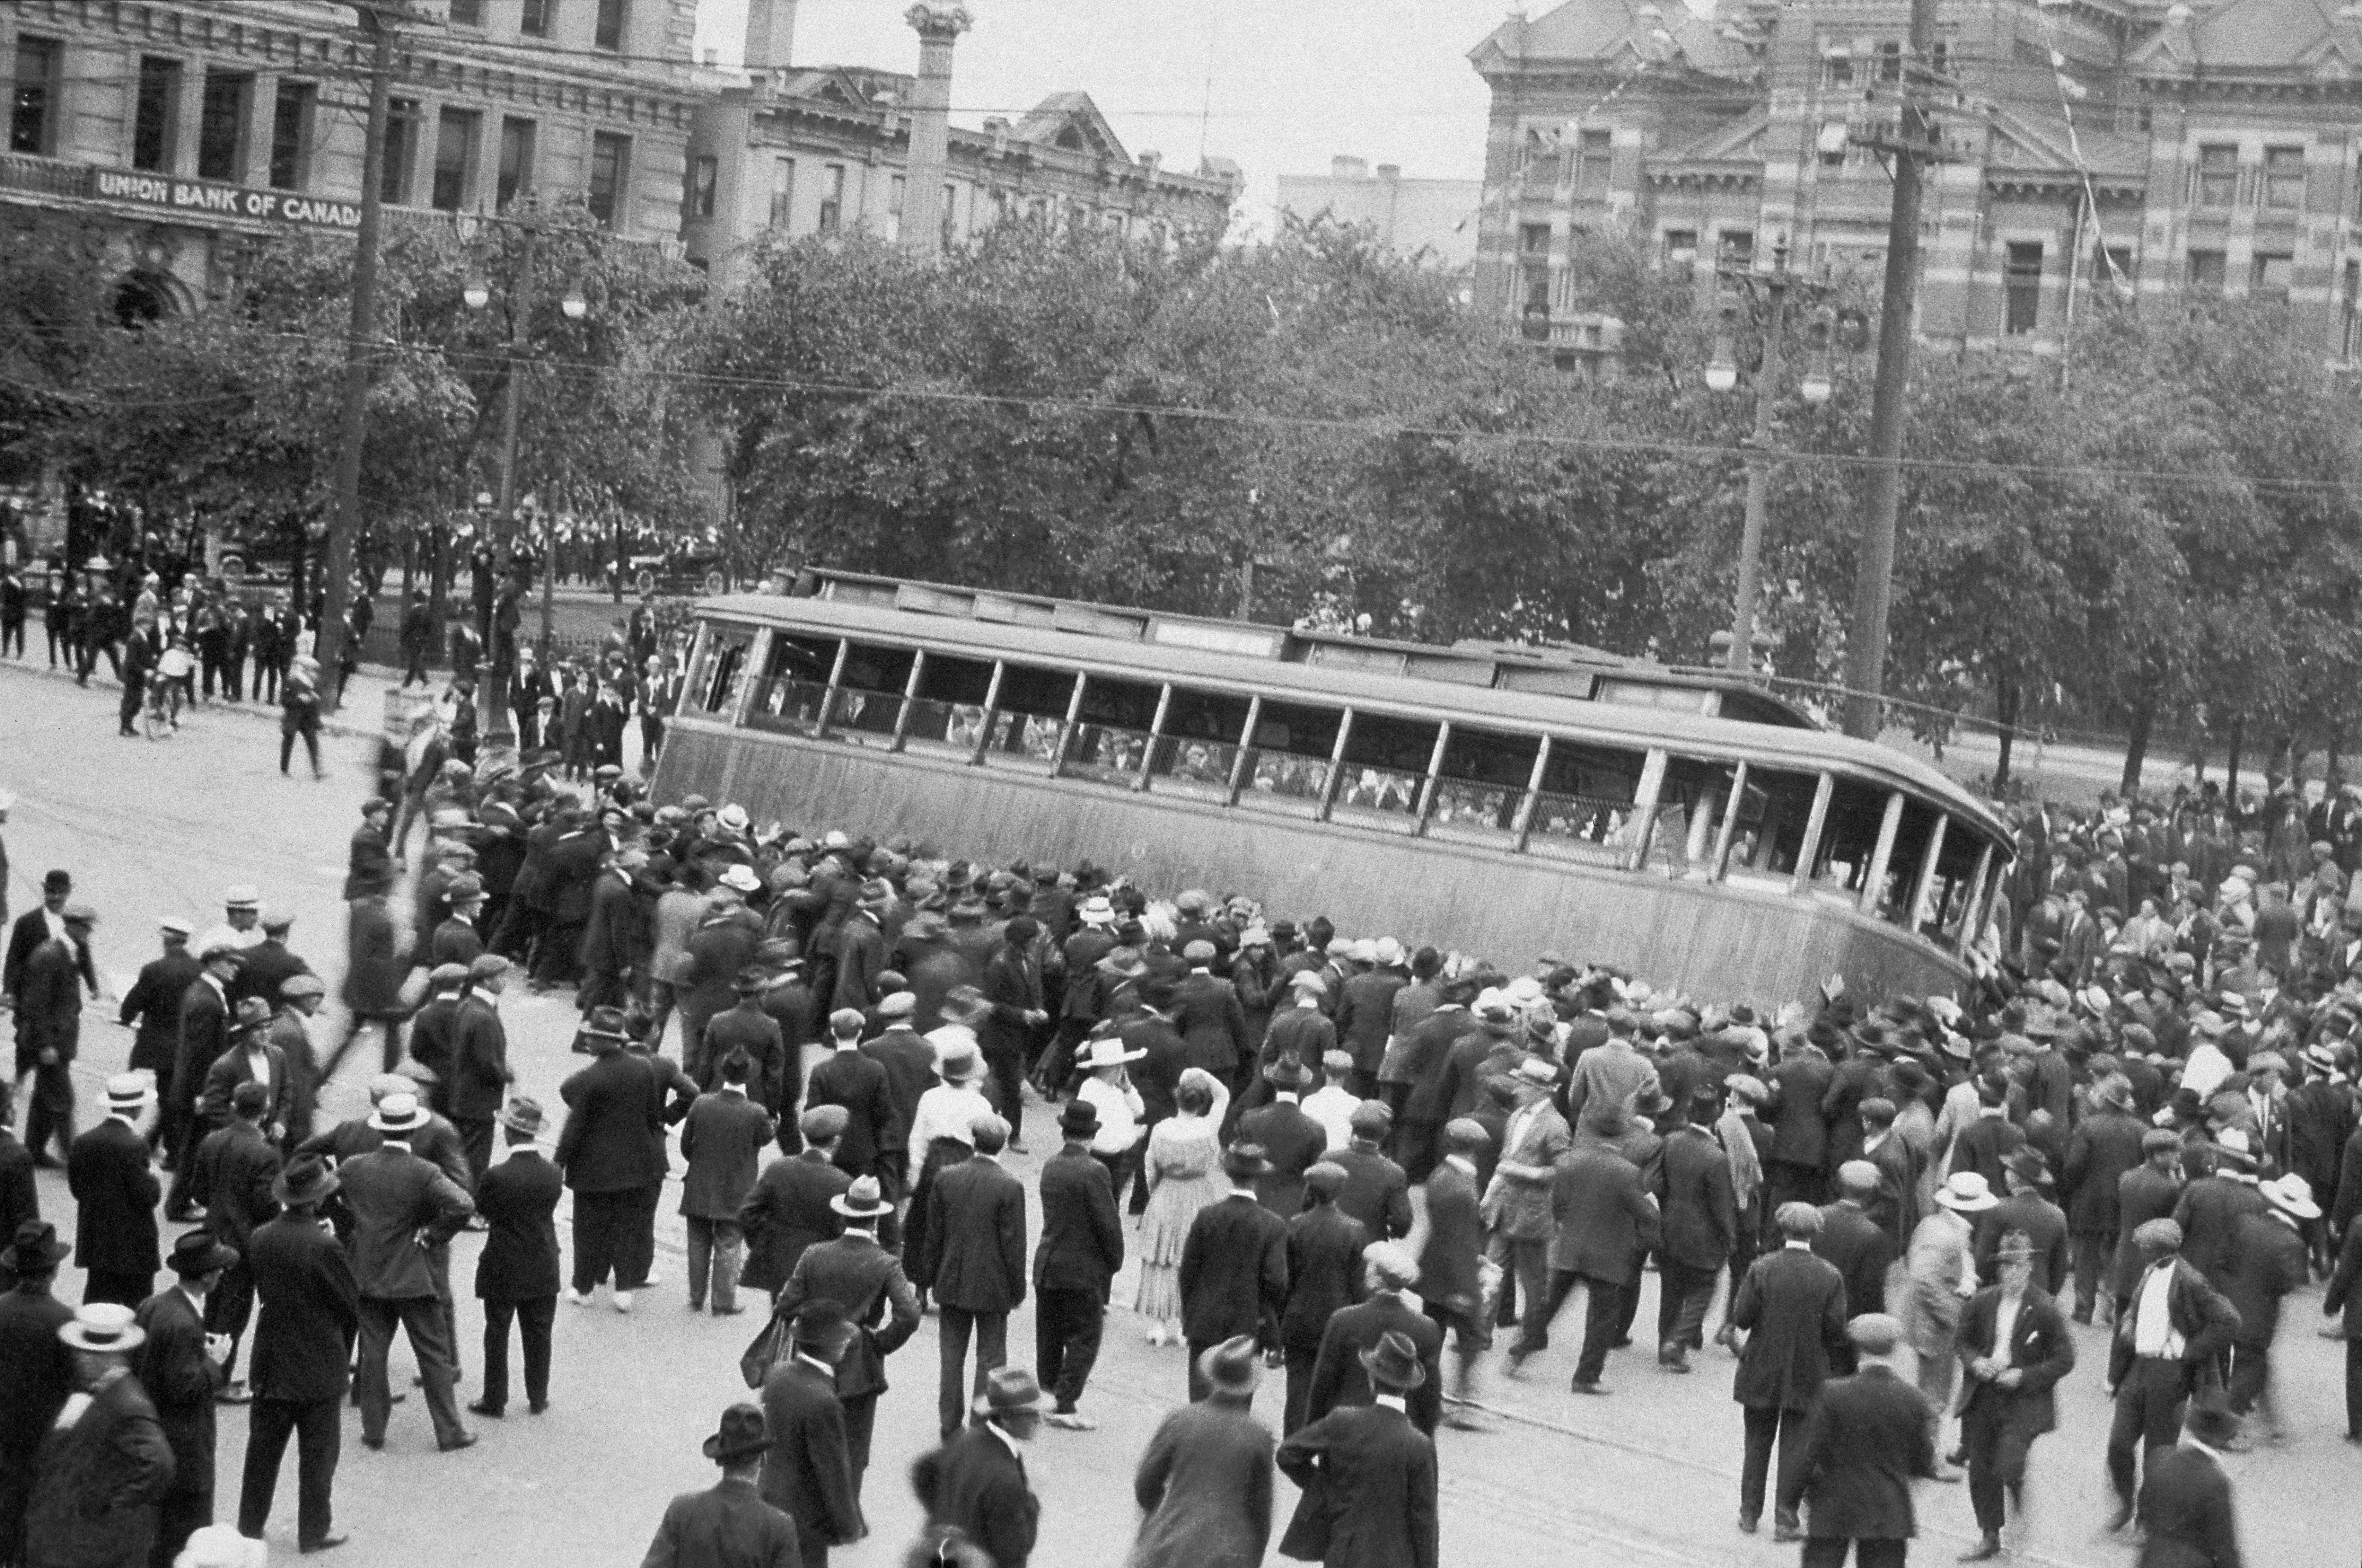 A streetcar is overturned in Winnipeg on June 21, 1919, which became known as Bloody Saturday, during the 1919 Winnipeg General Strike. (Foote collection/Archives of Manitoba)